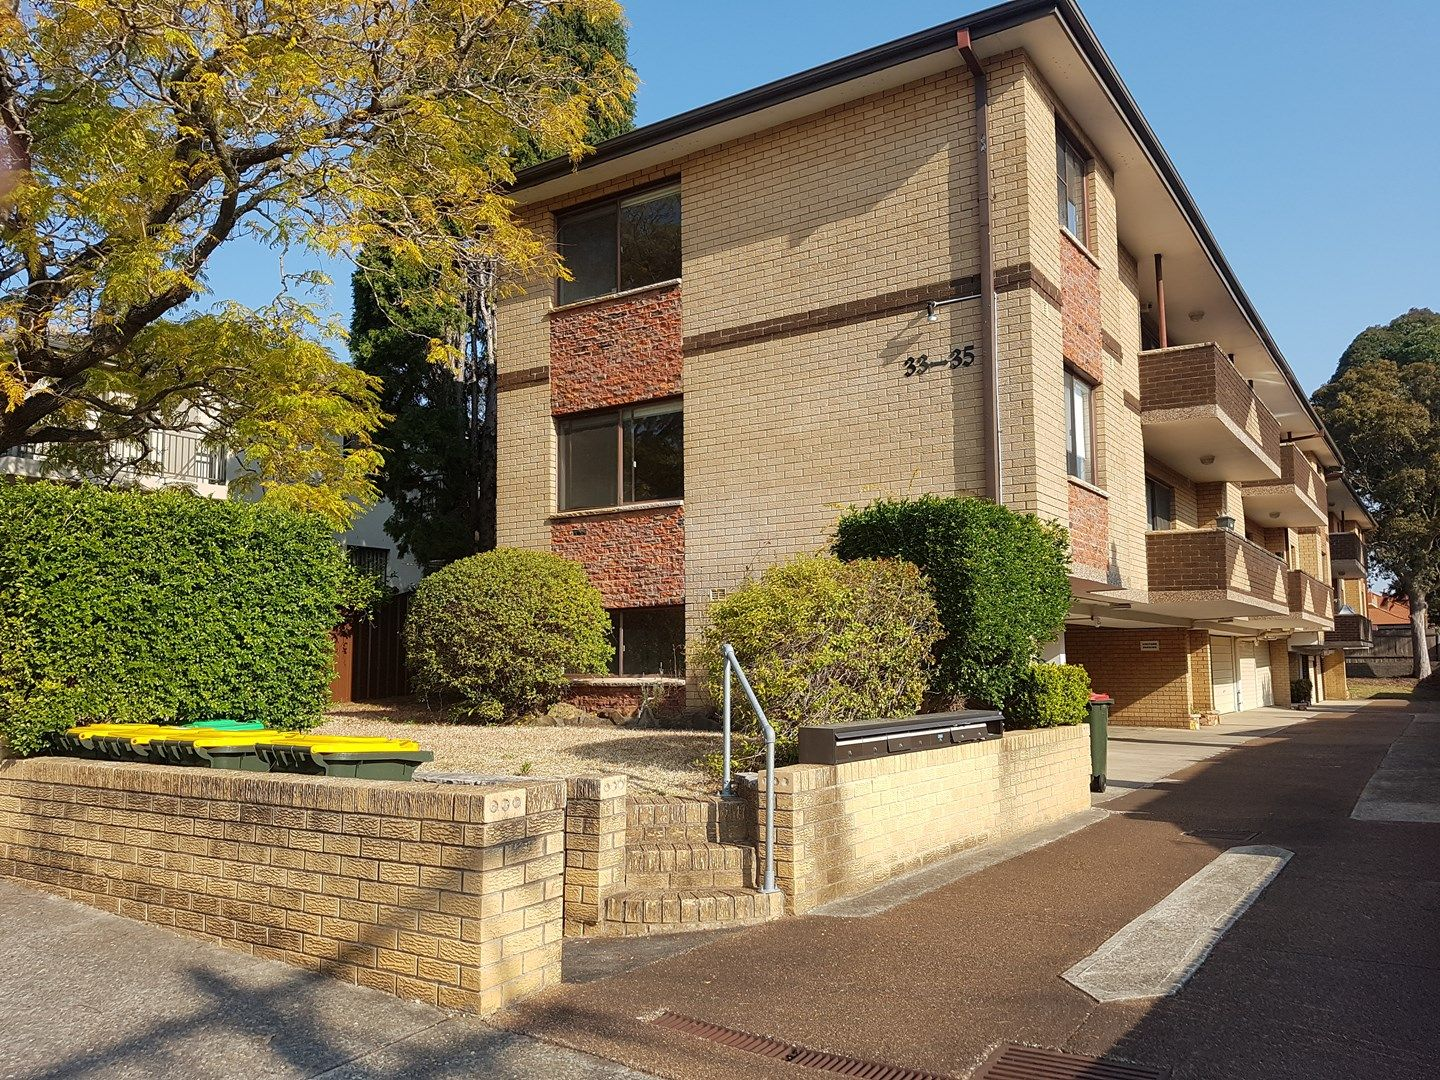 5/33-35 Garfield Street, Five Dock NSW 2046, Image 0